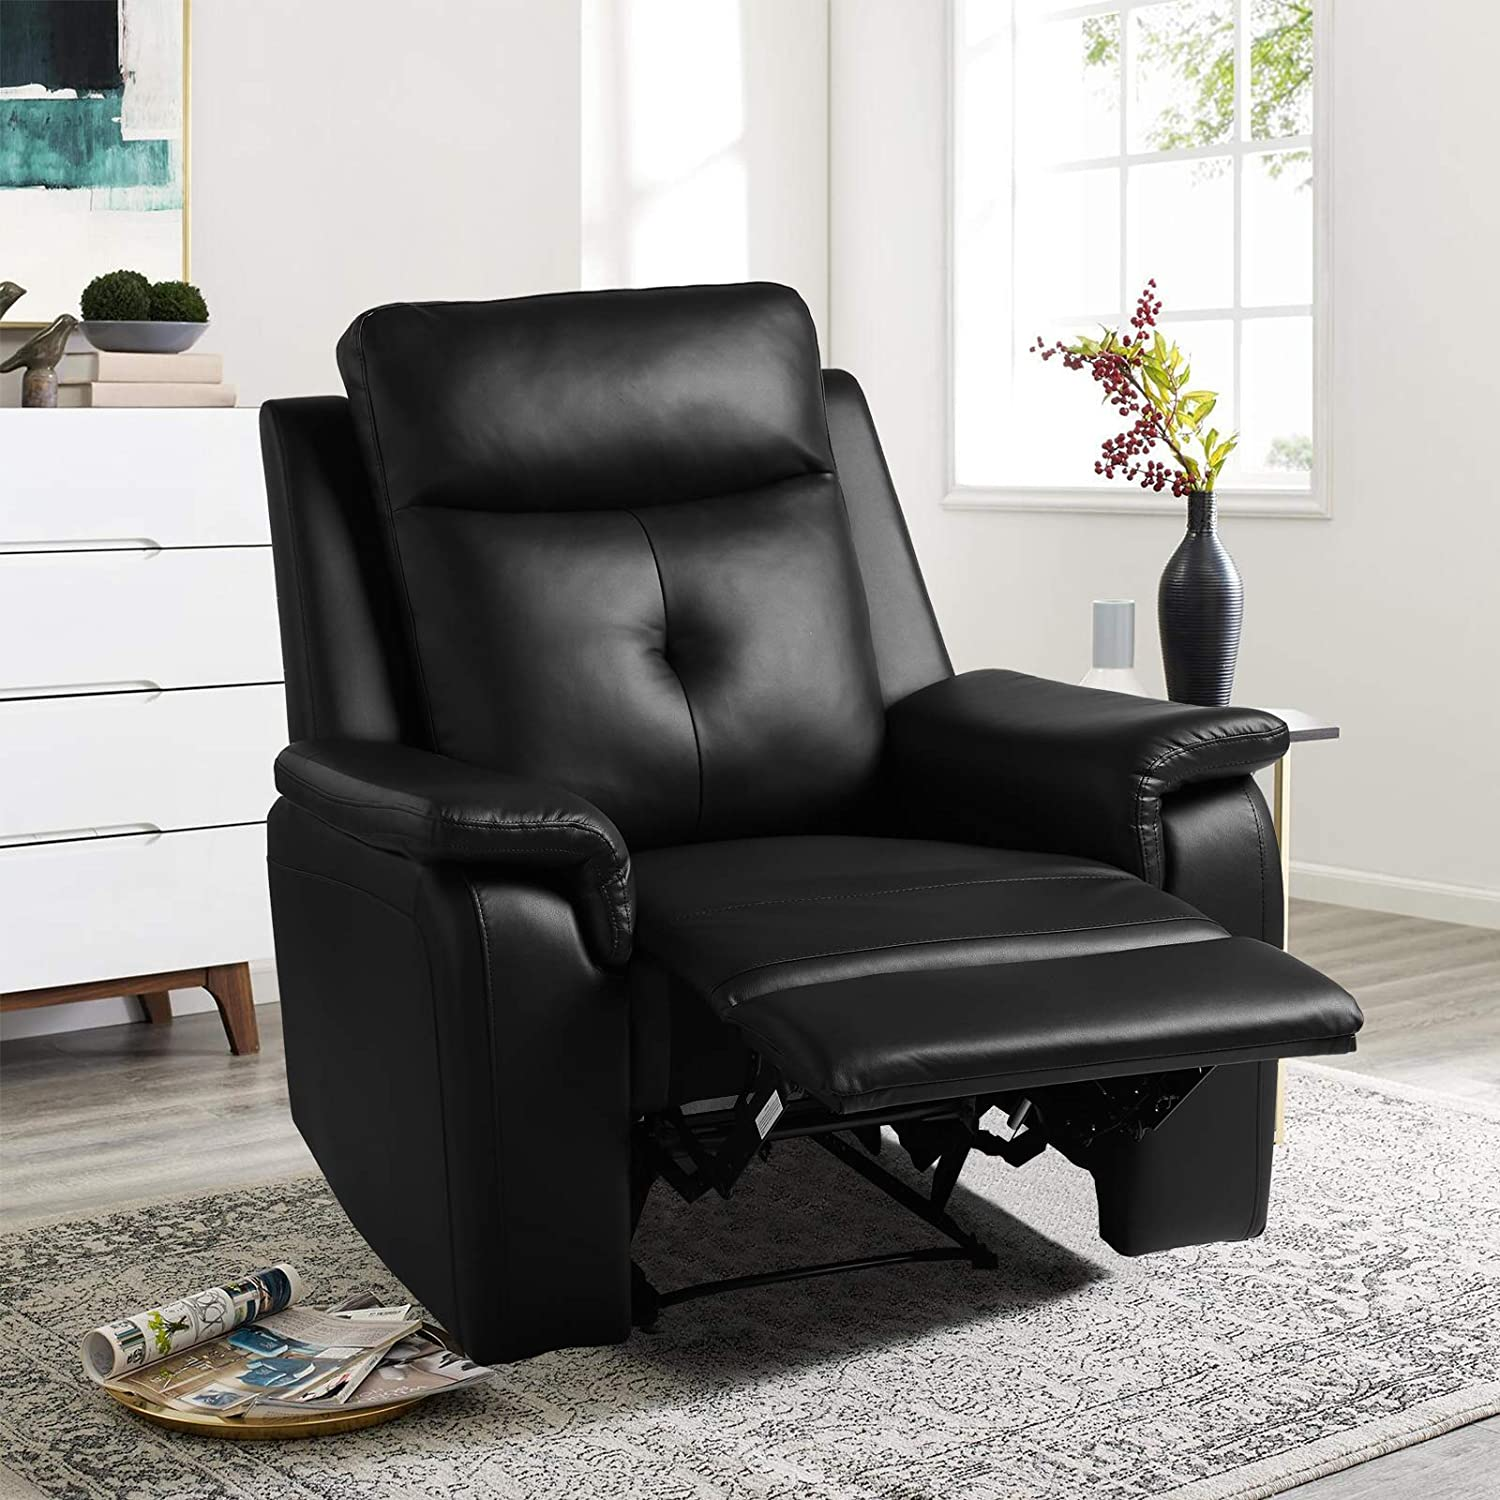 Manual Recliner Chair - Modern PU Leather Reclining Single Sofa - Ergonomic Design Home Theater Seating for Living Room, Bedroom, Home, Office (A:Black)